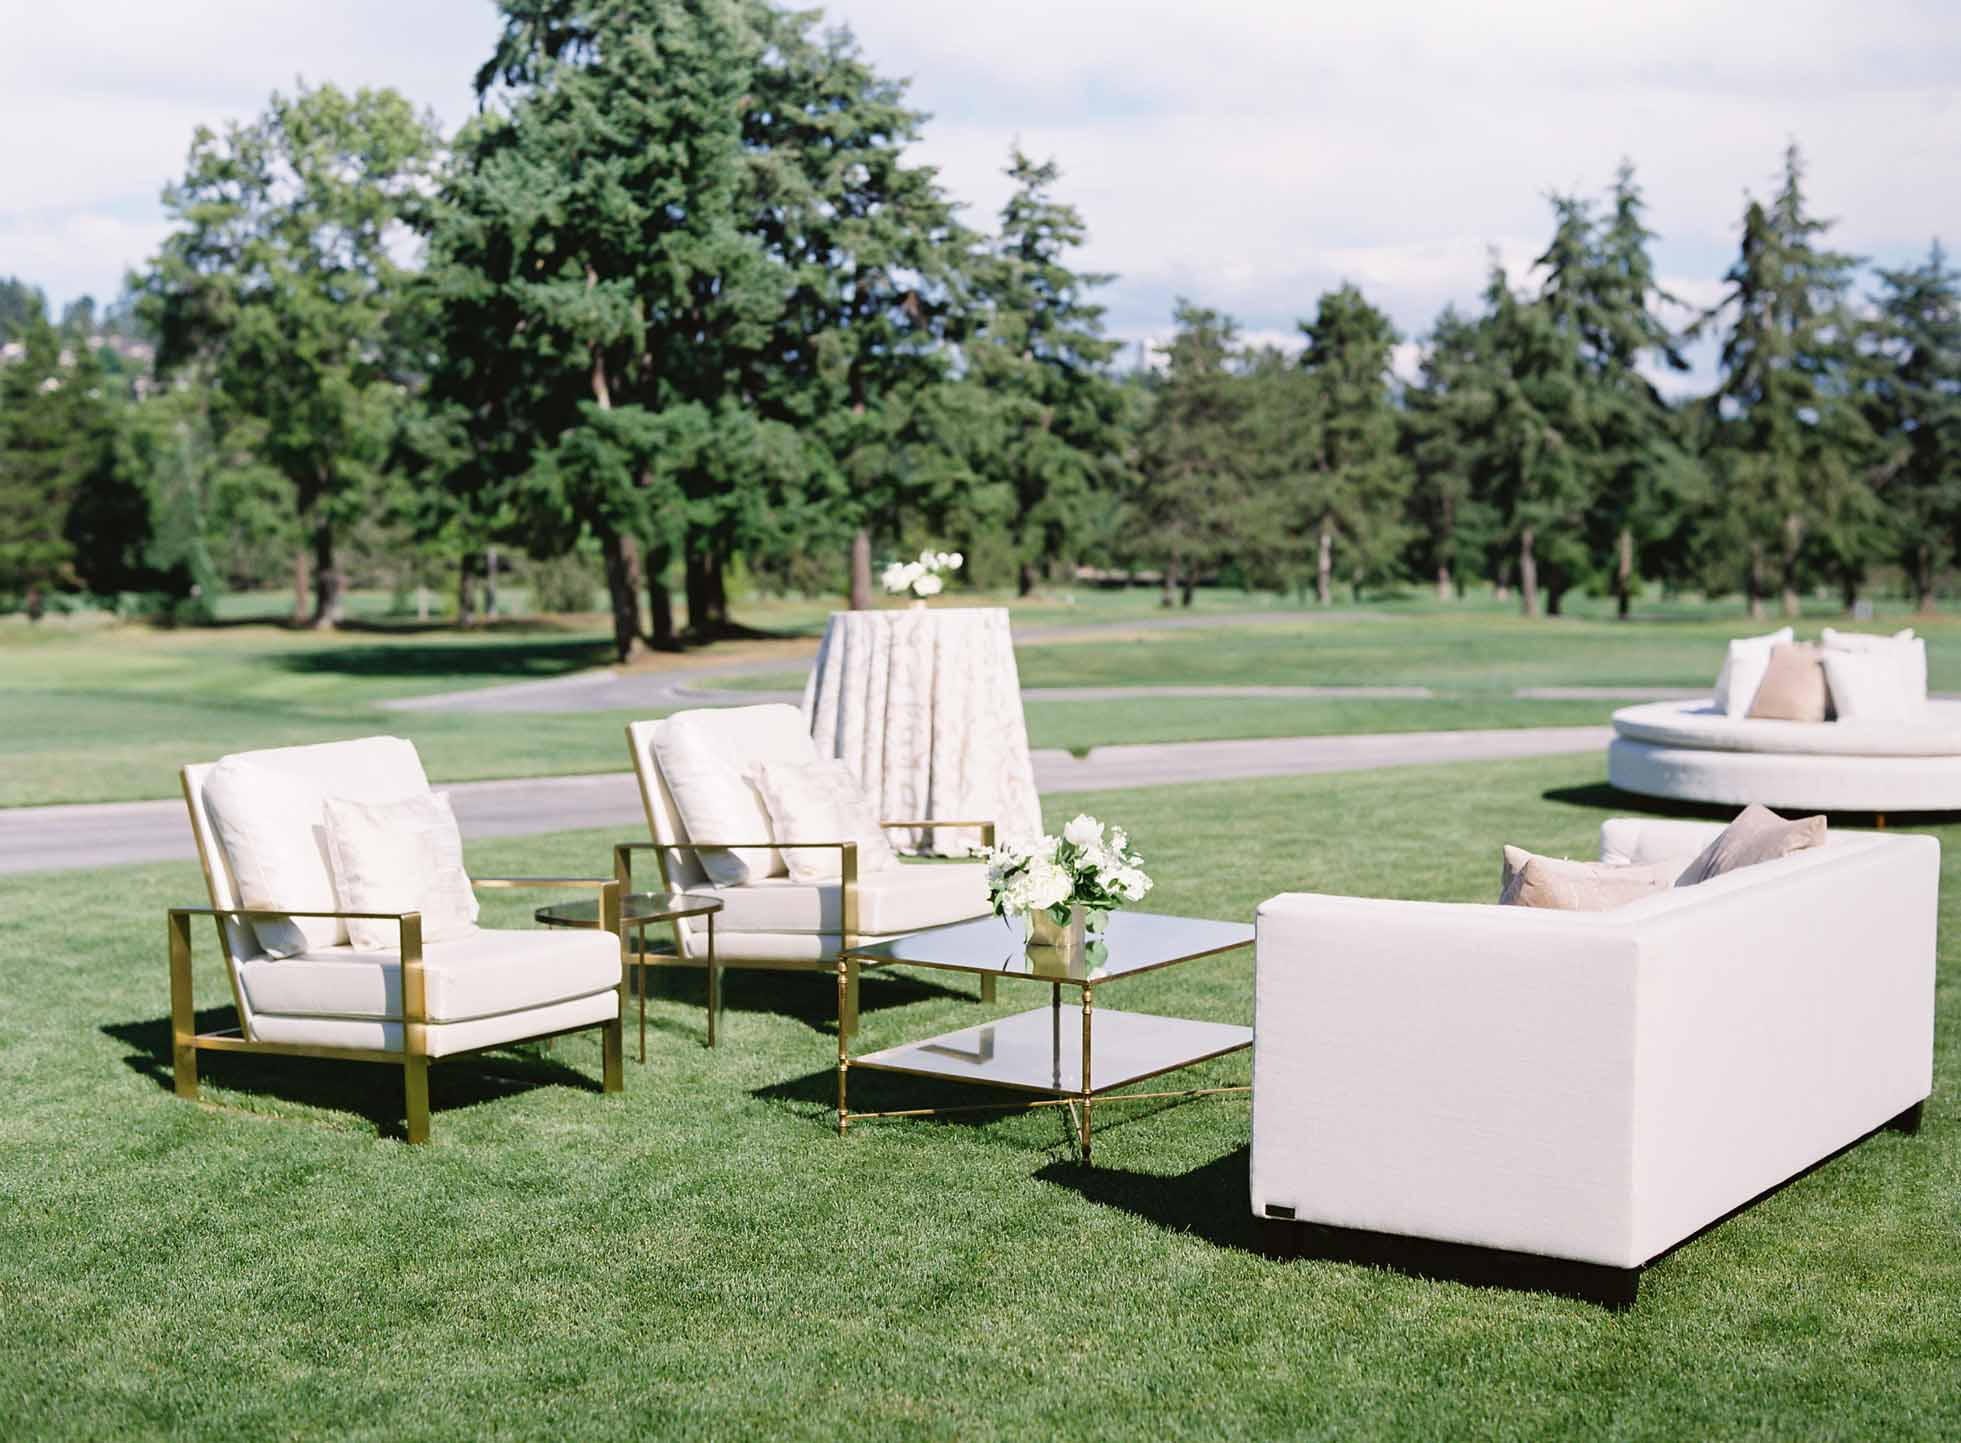 White lounge furniture for a wedding cocktail hour at Overlake Country Club - by Flora Nova Design